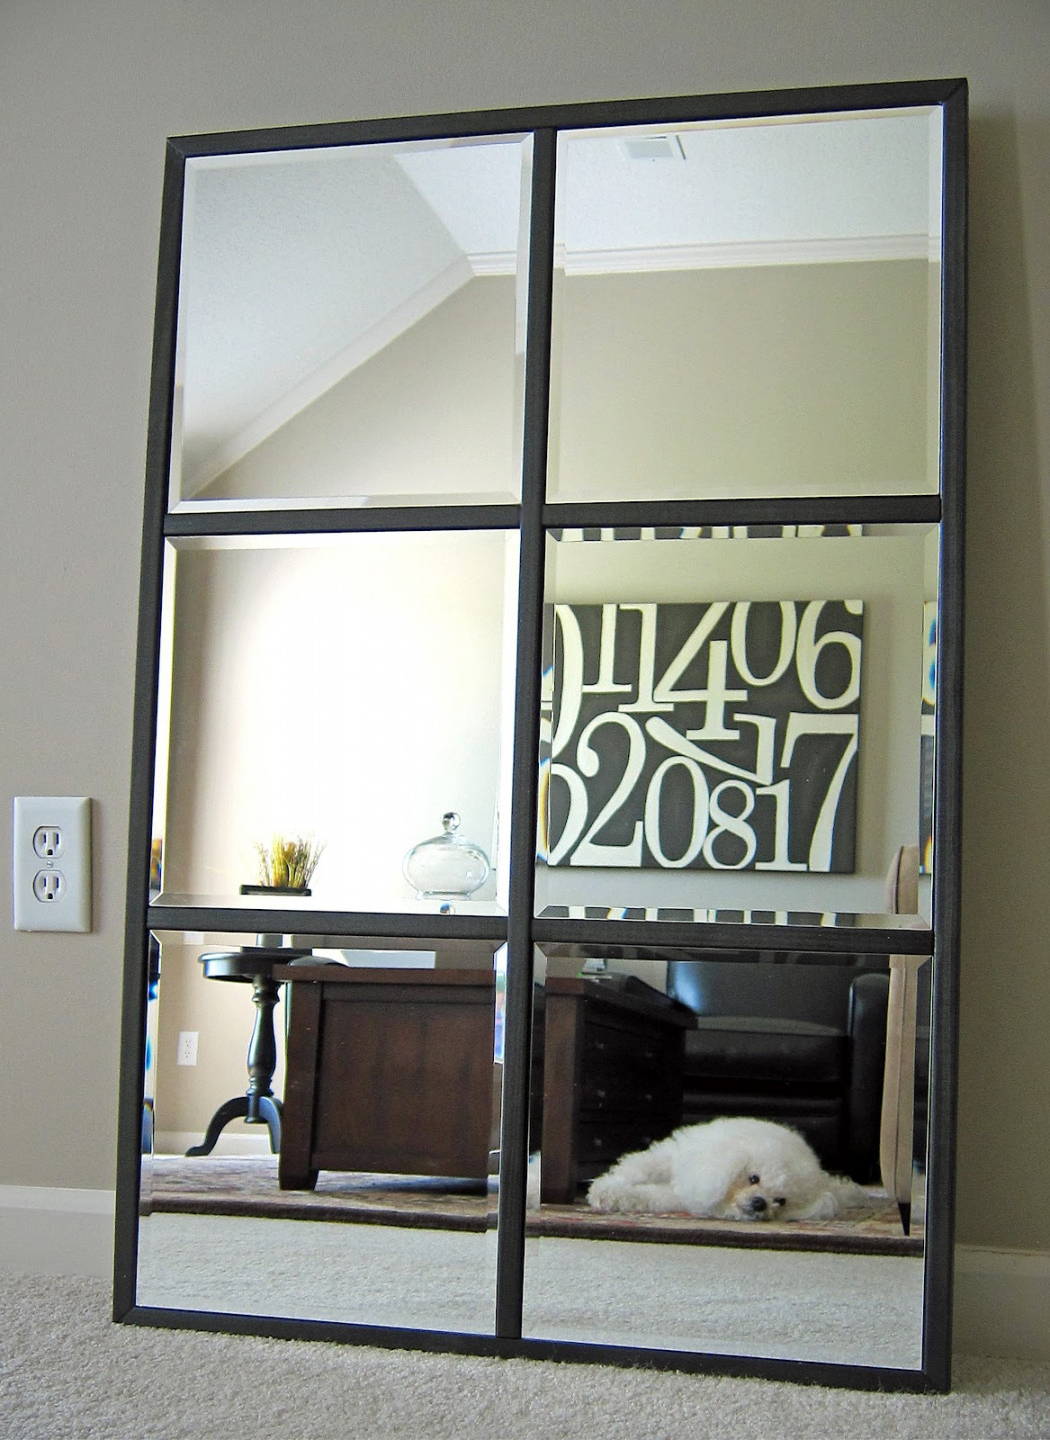 2020 Creative Unique Wall Mirrors Ideas And Designs Home Unusual With Regard To Unique Wall Mirrors (View 8 of 20)